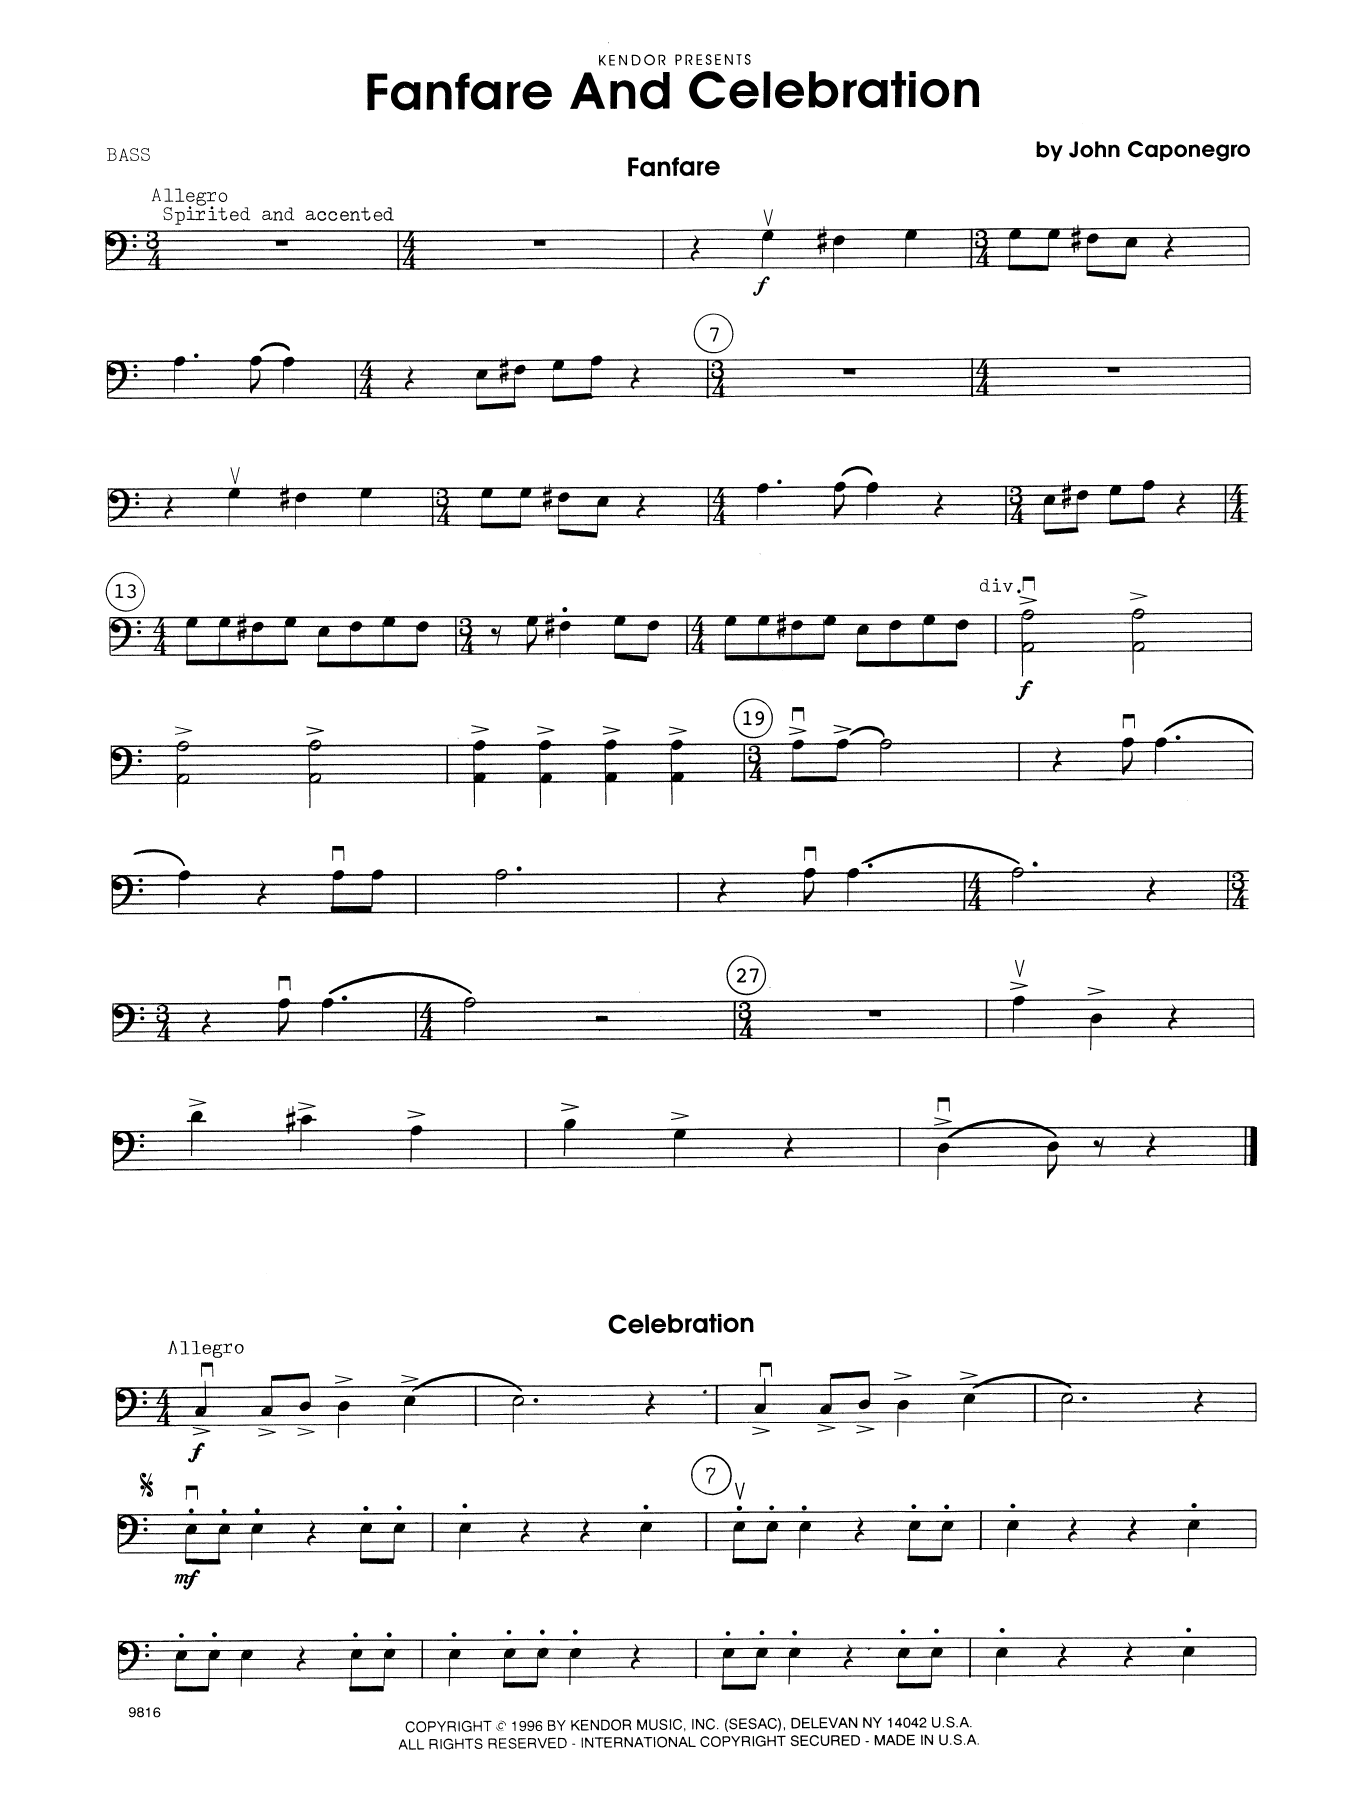 John Caponegro Fanfare and Celebration - Bass sheet music notes and chords. Download Printable PDF.